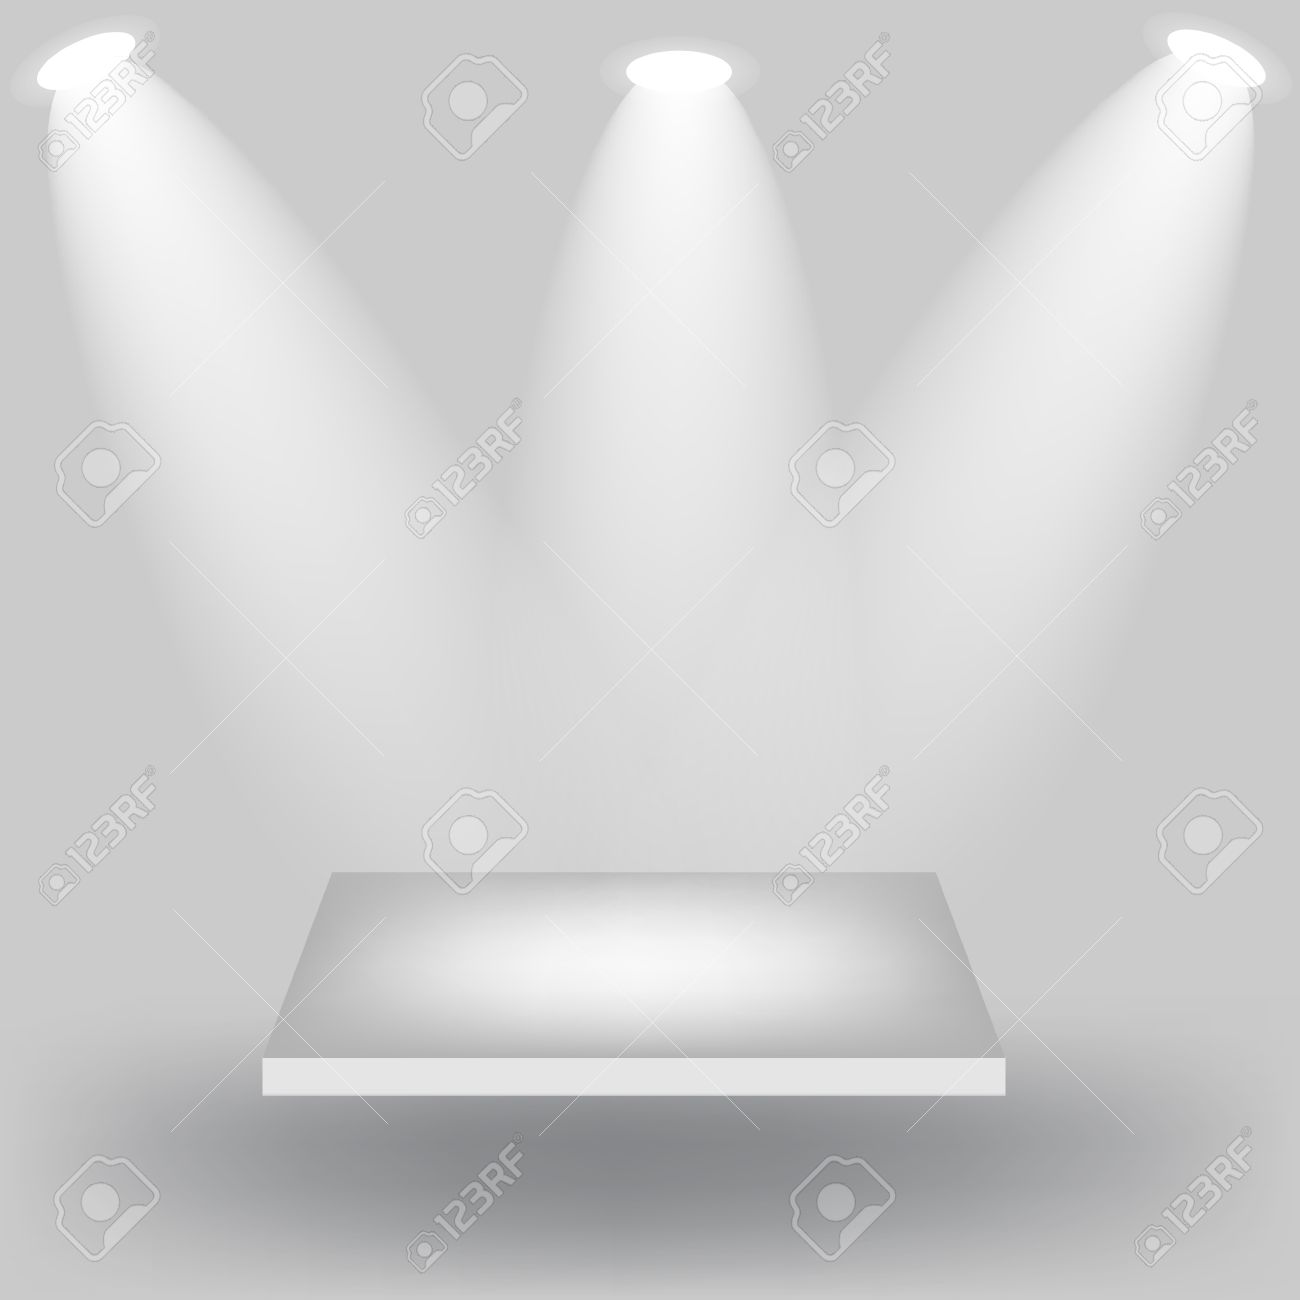 Empty white shelves on light grey background Stock Vector - 13810750